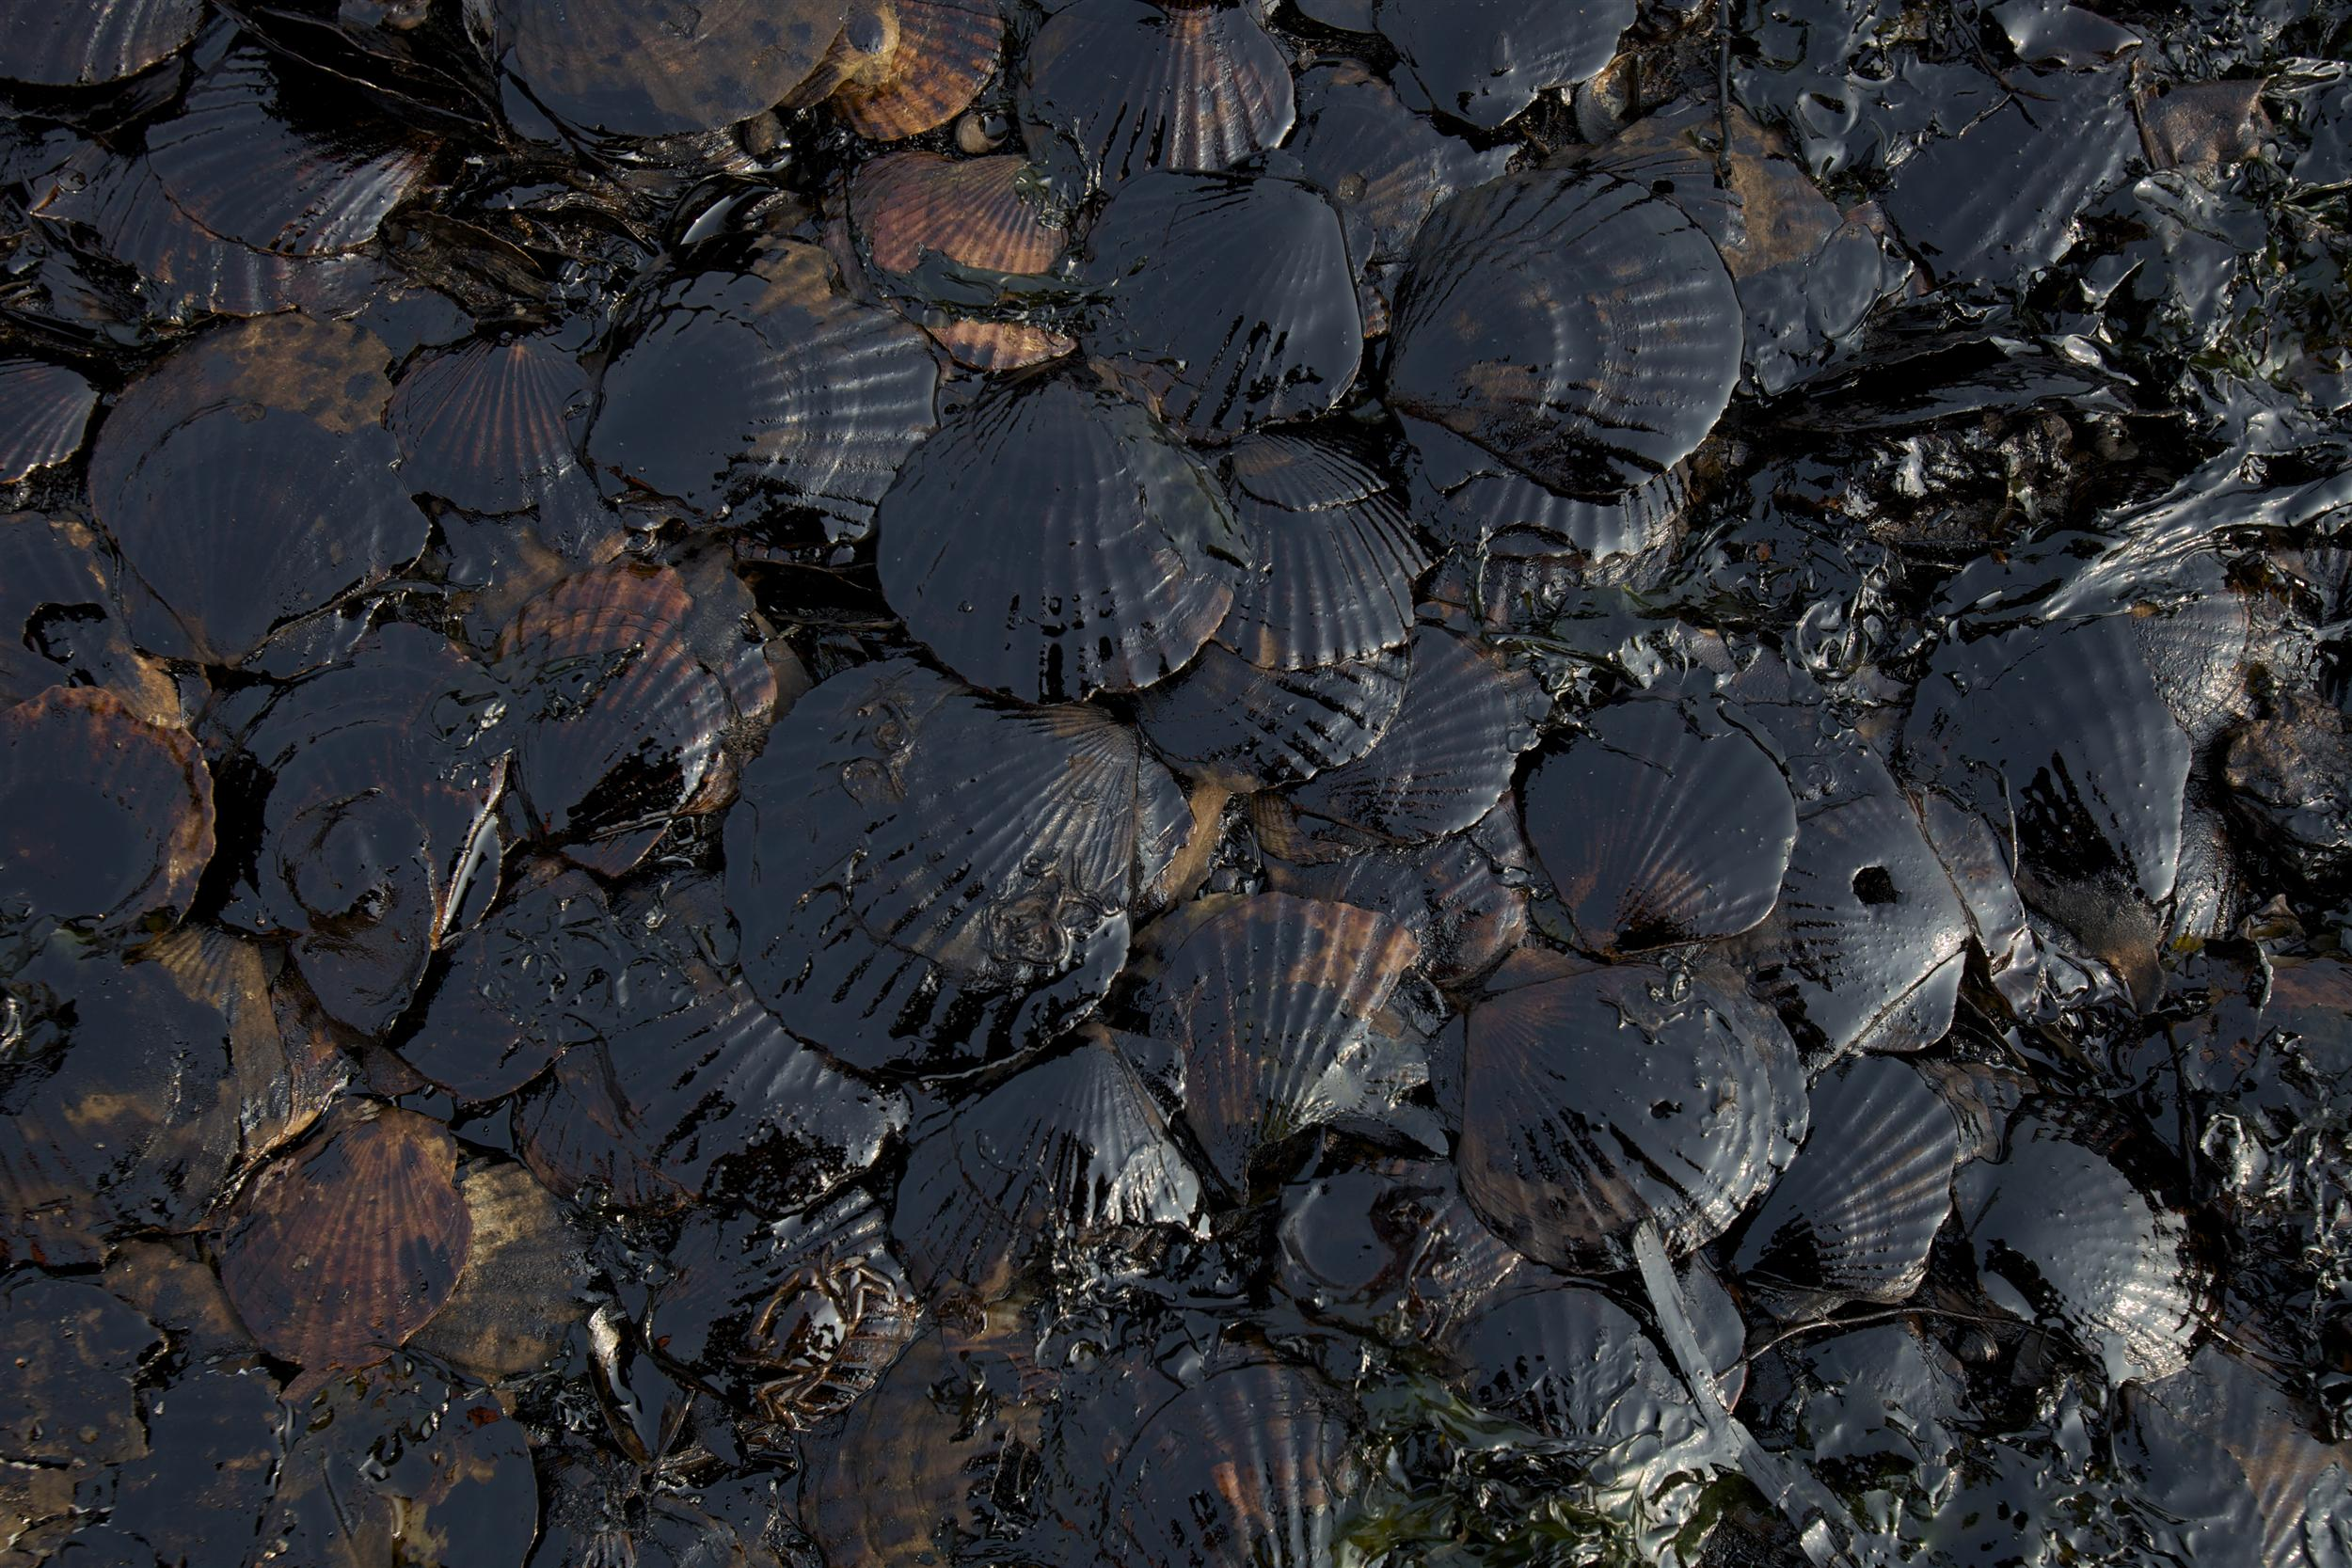 dead scallops covered in oil